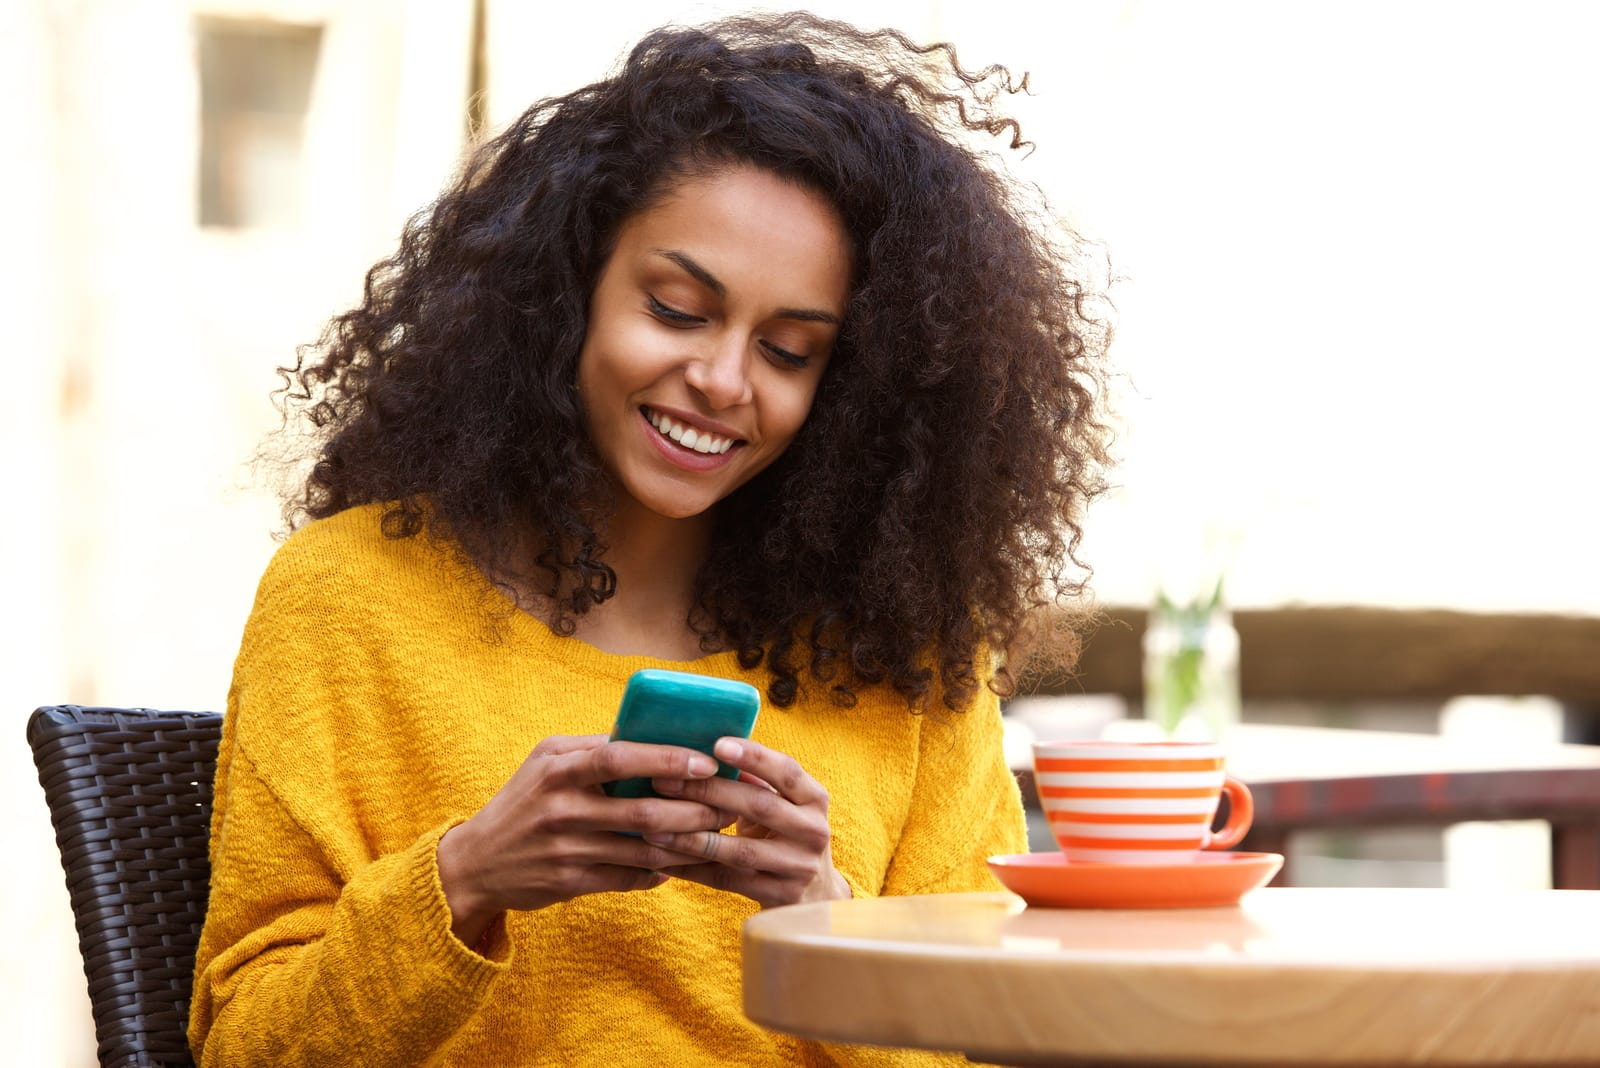 a smiling happy black woman in a yellow sweater sits drinking coffee and texting